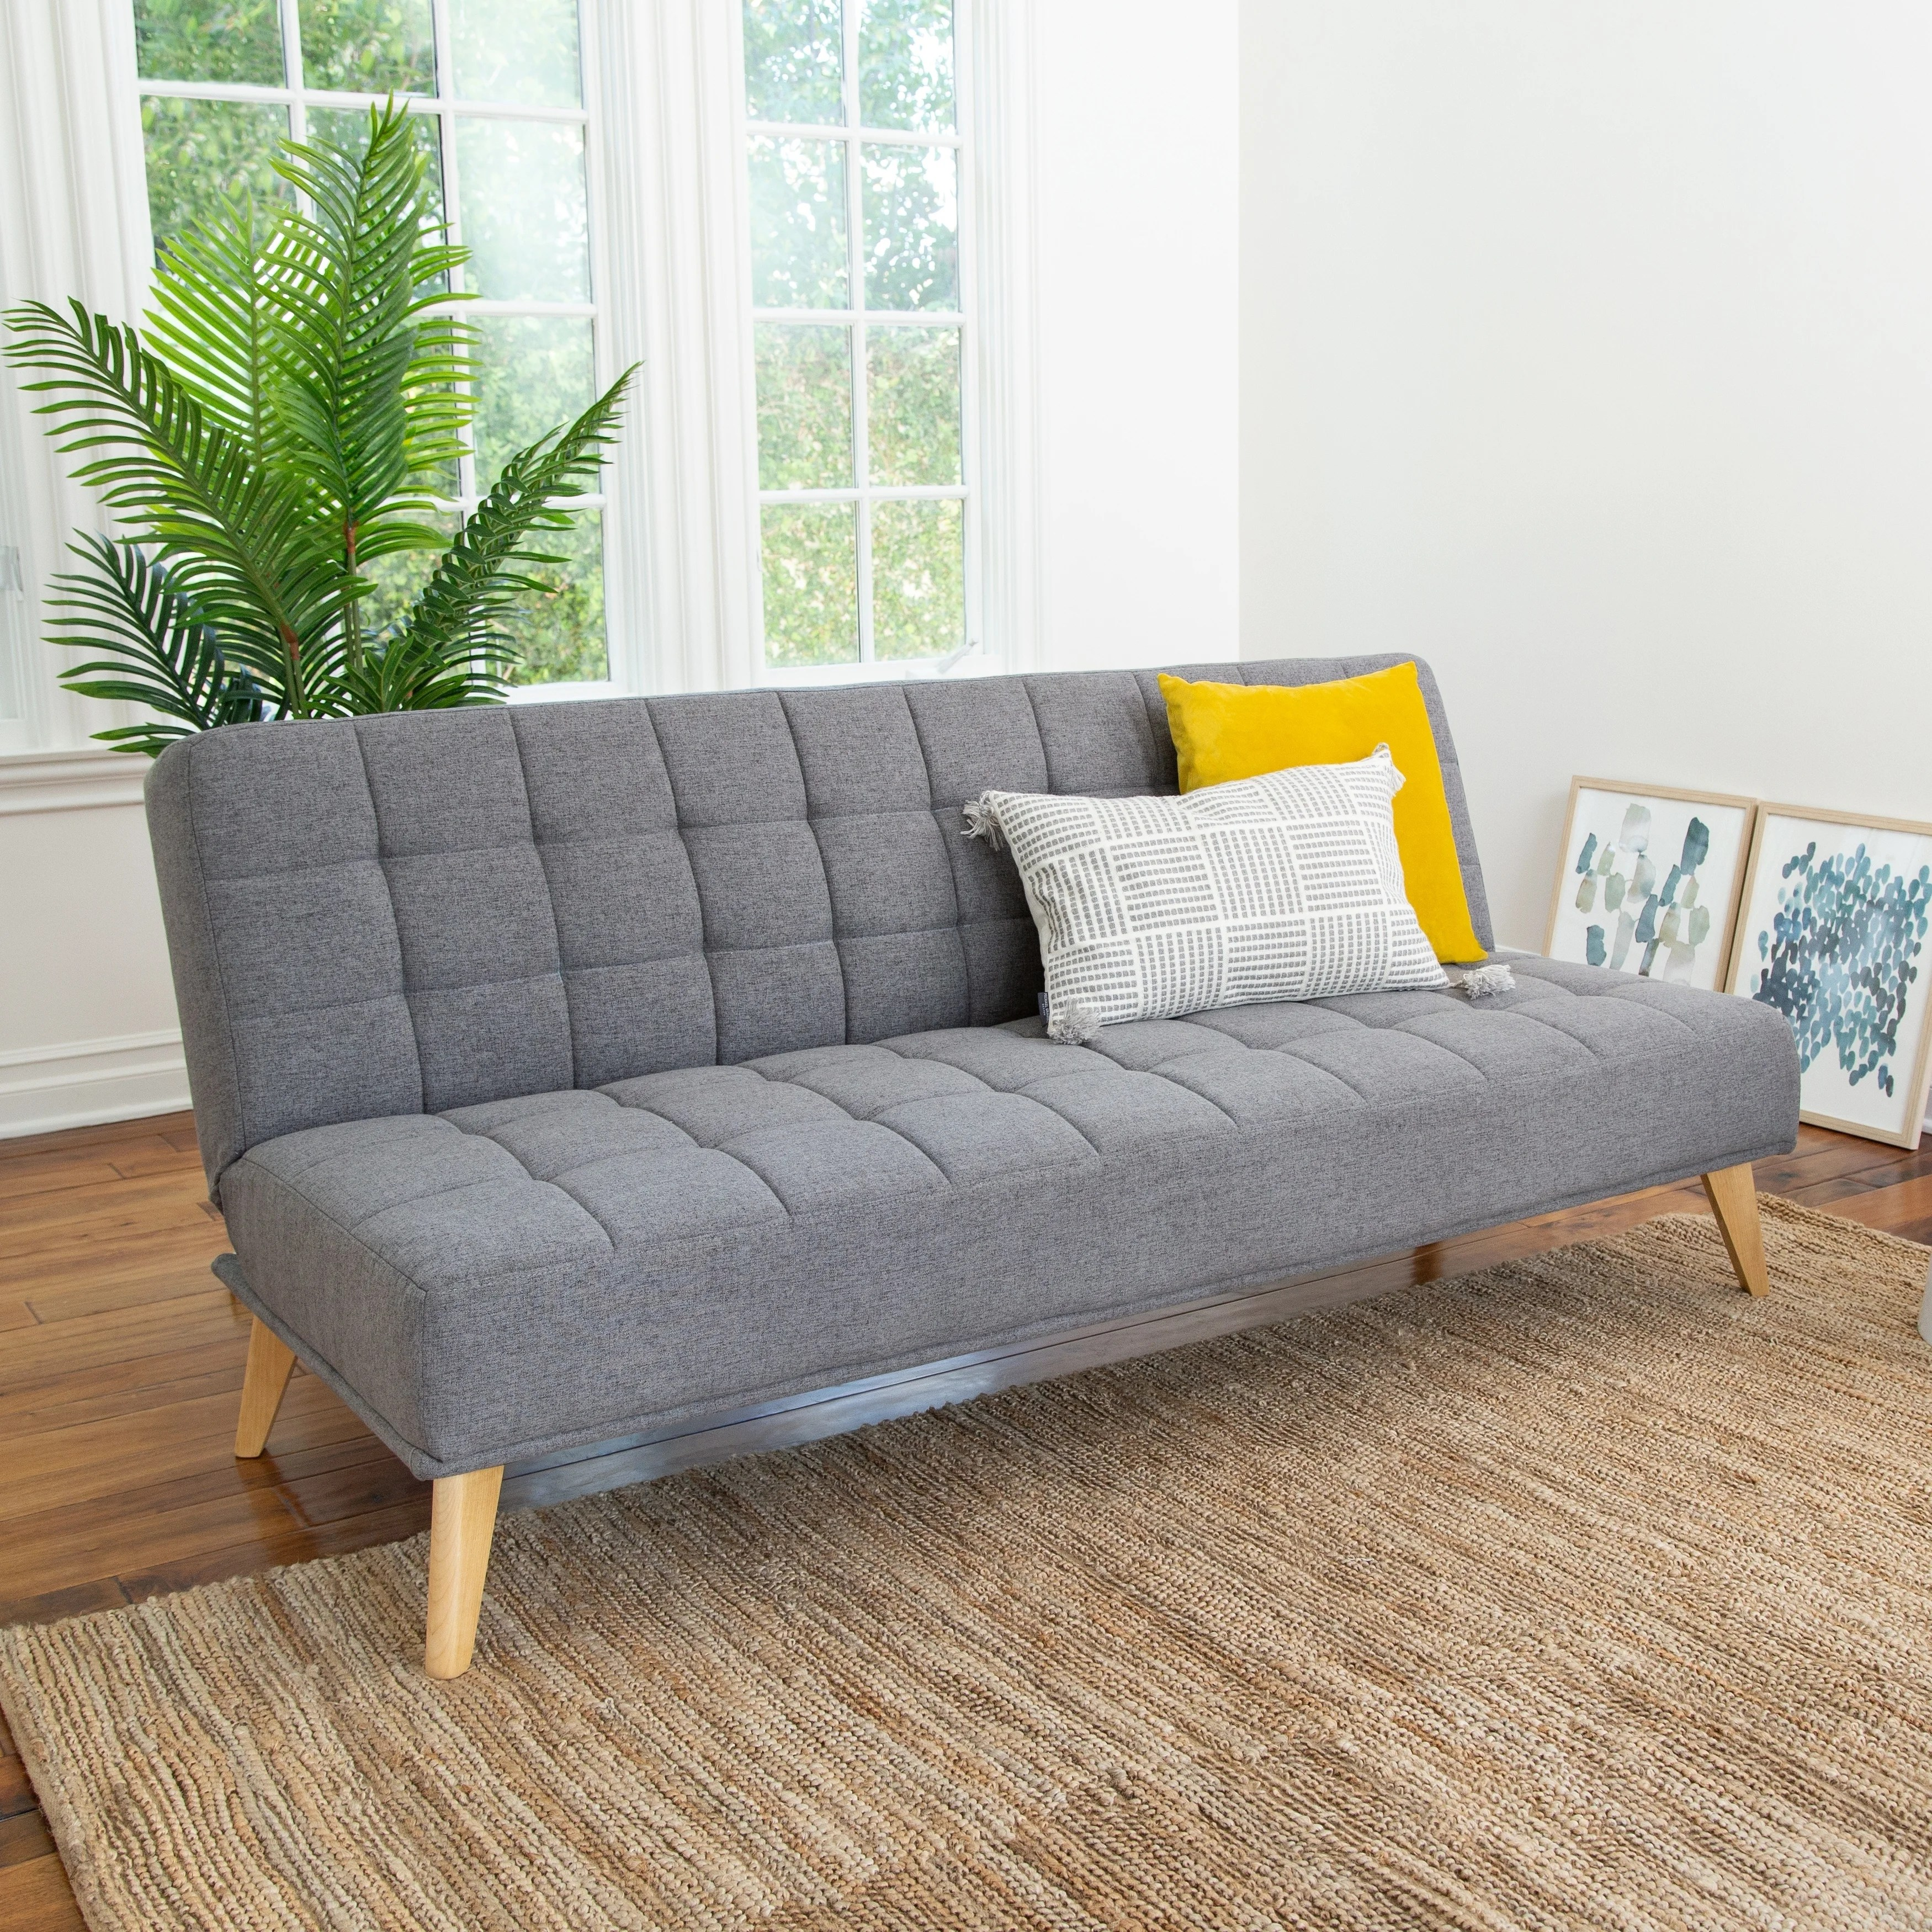 Sleeper Sofa Quick Delivery Buy Sleeper Sofa Online At Overstock Our Best Living Room